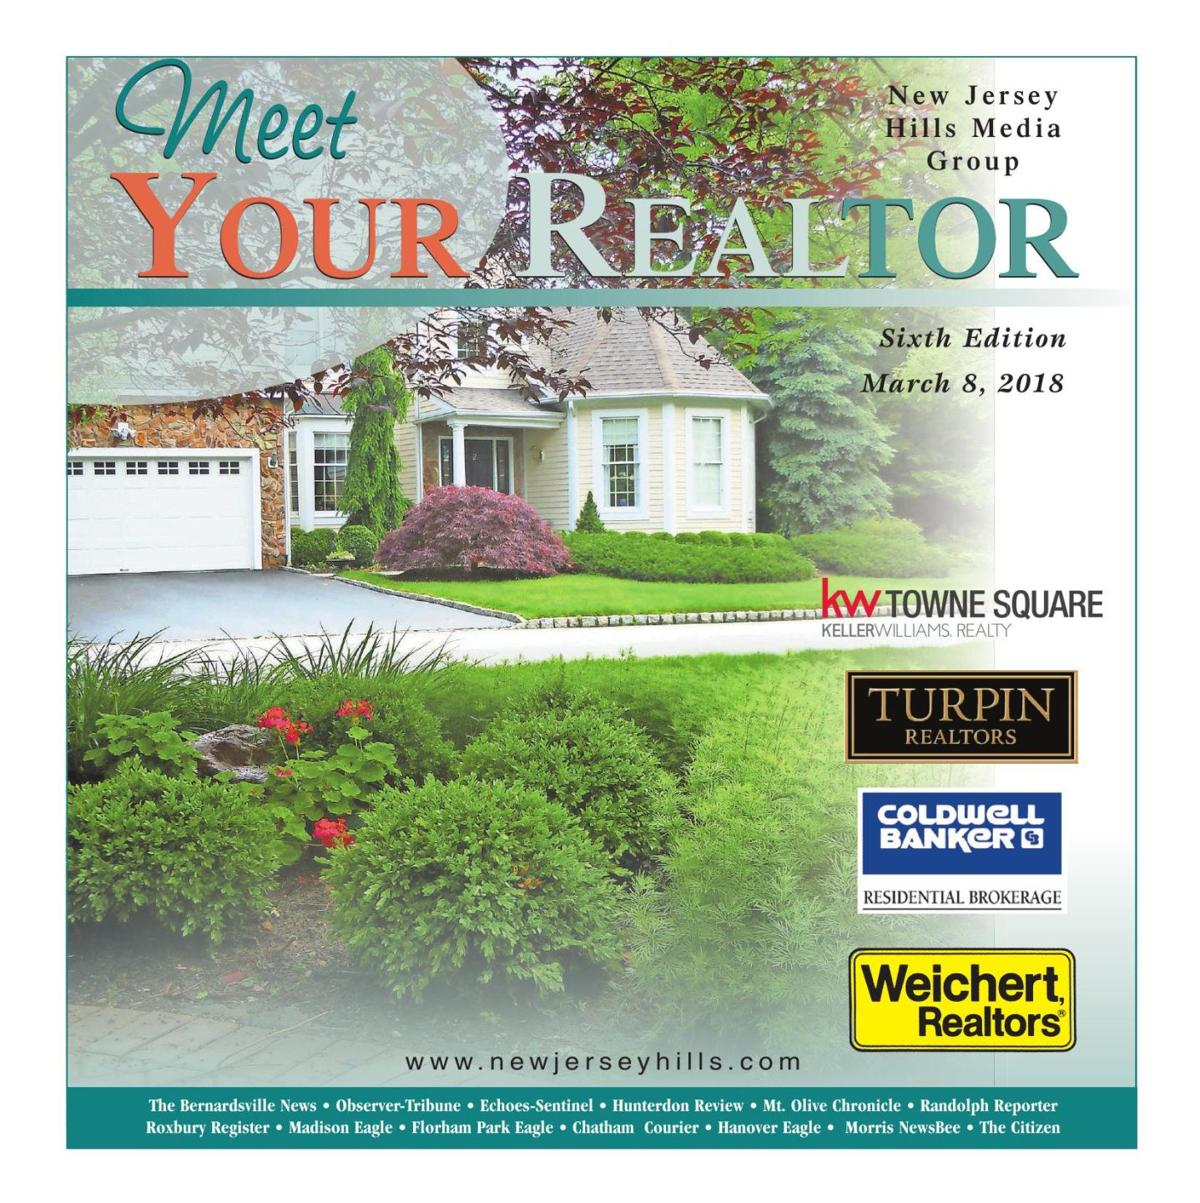 Meet Your Realtor - March 8, 2018